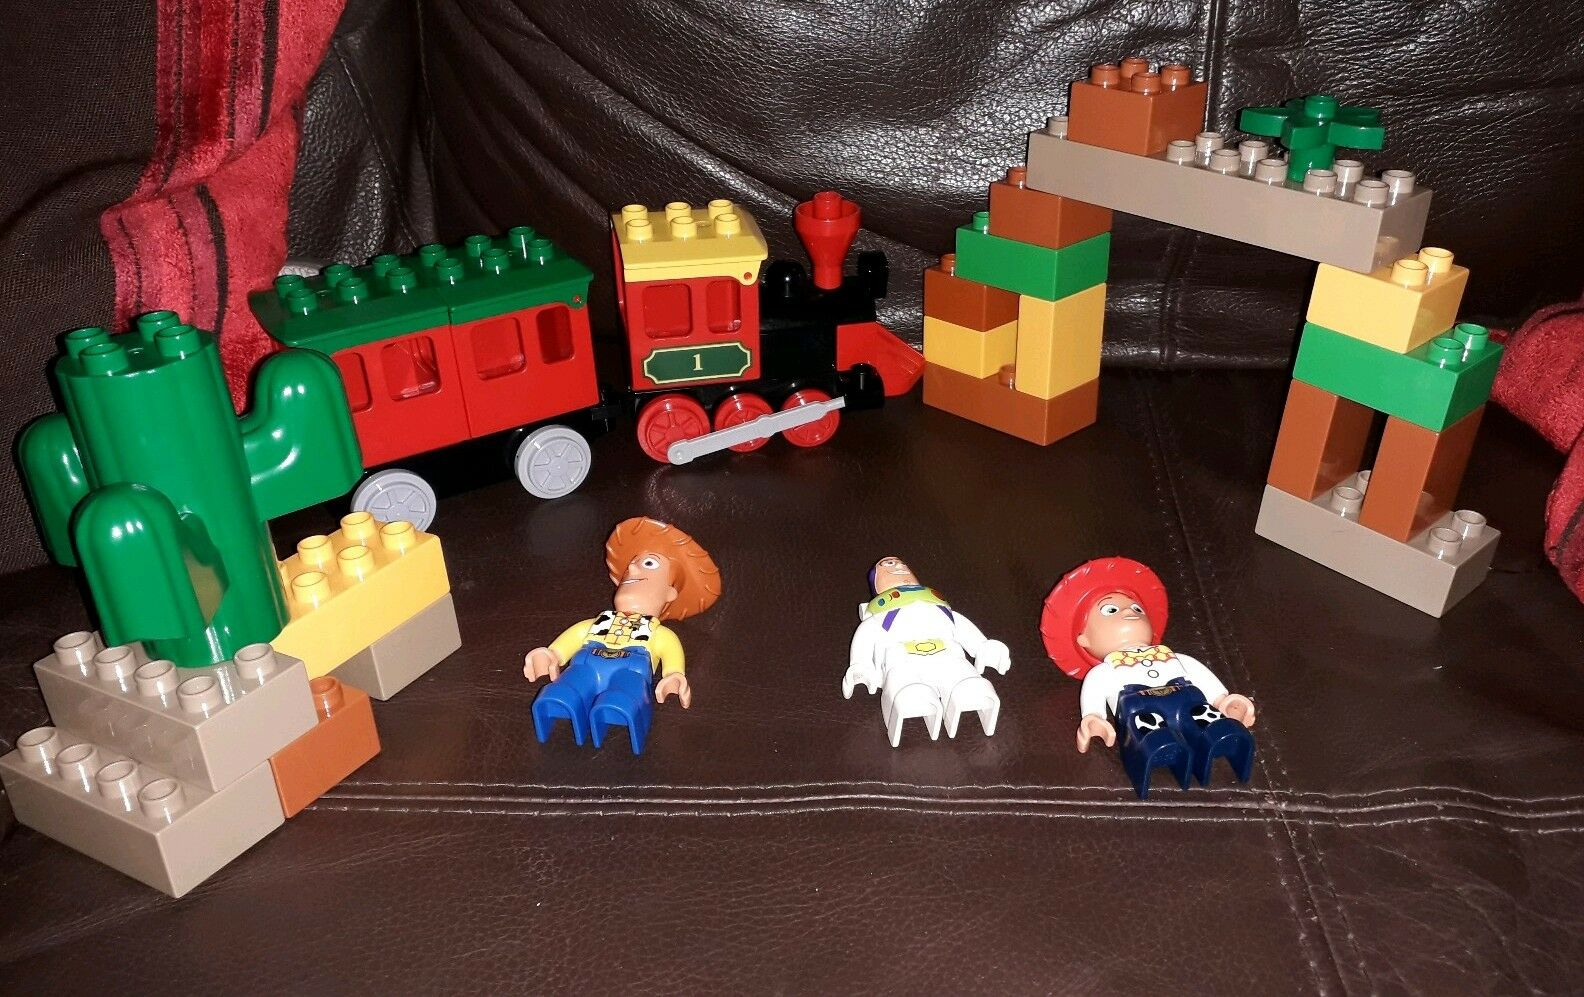 Lego duplo 5659 Toy Story - The great train chase